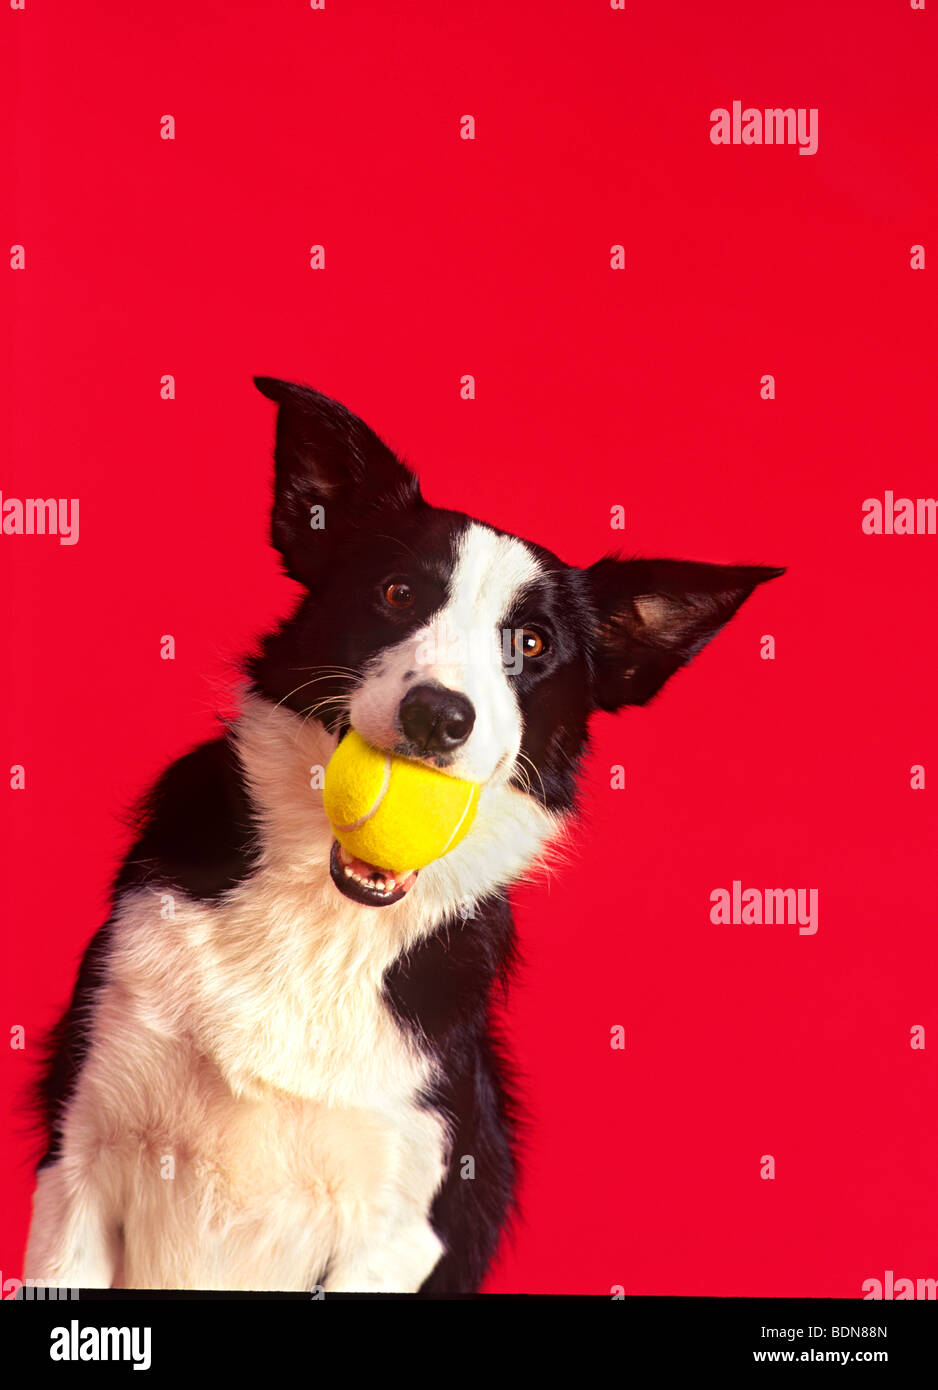 Dog 'holding tennis ball' in mouth - Stock Image